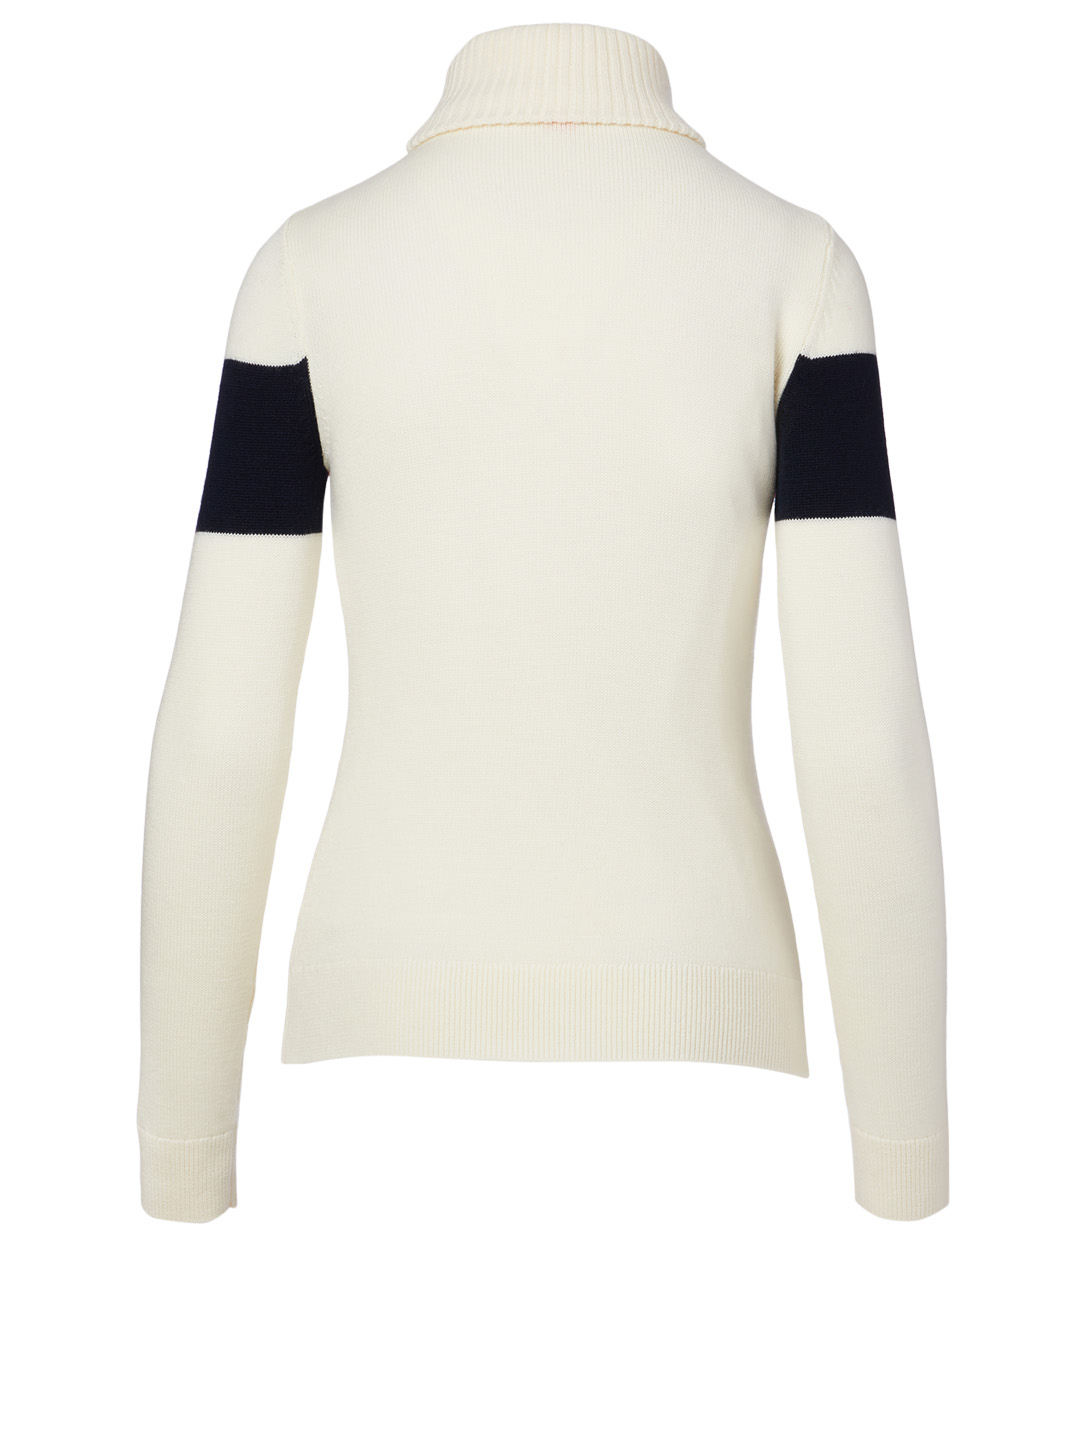 PERFECT MOMENT Wool Ski Sweater Women's White